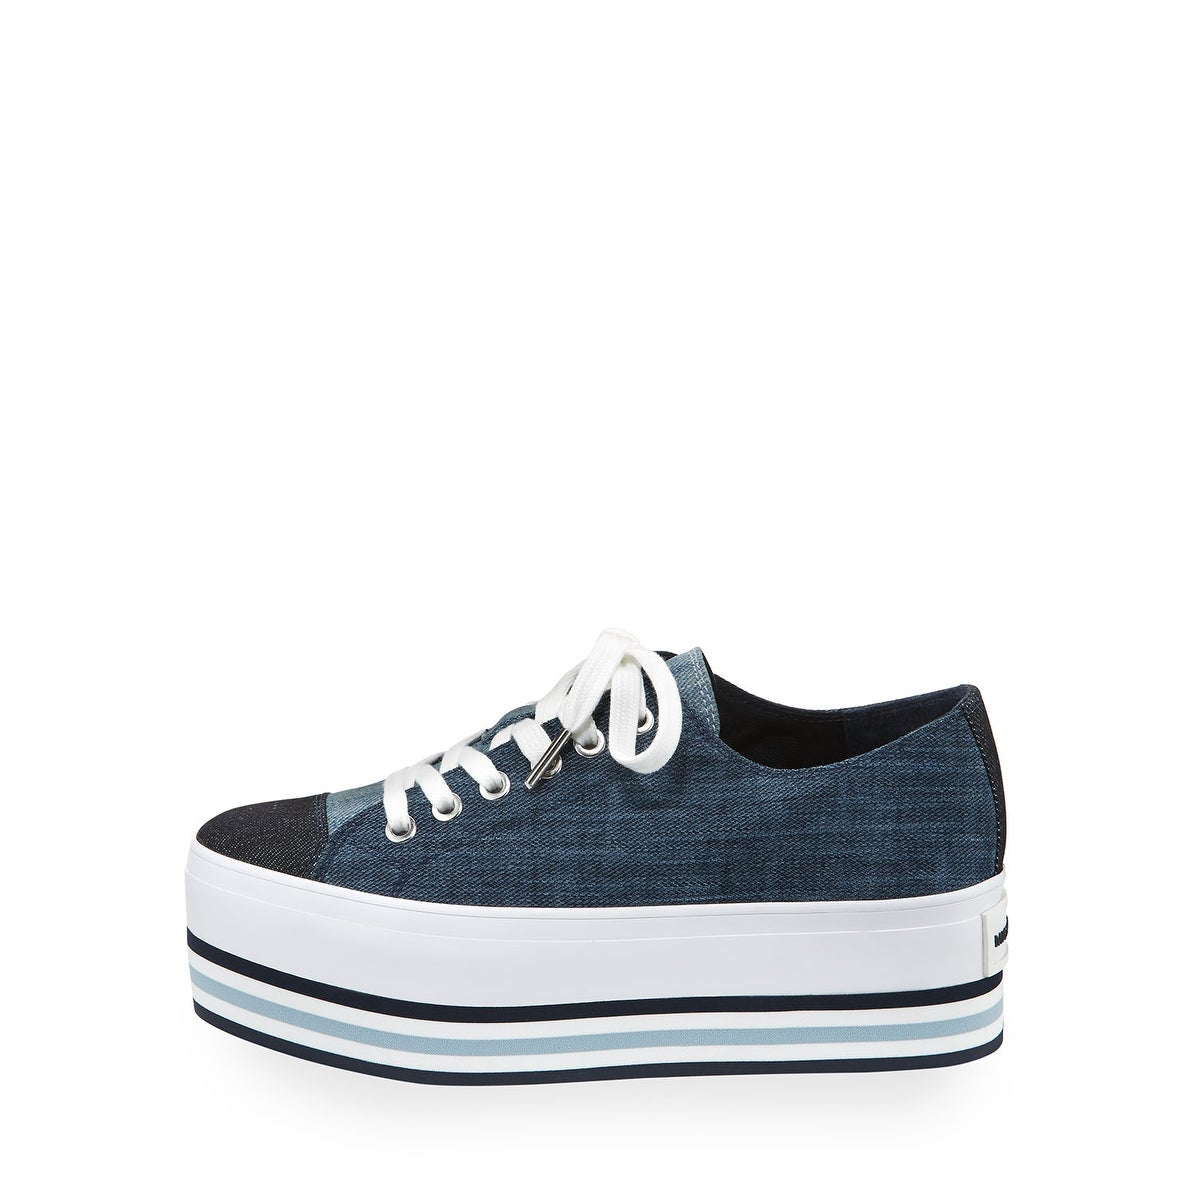 8b386f61619a Shop MICHAEL Michael Kors Womens Ronnie Sneaker Fabric Low Top Lace Up  Fashion Sne... - Free Shipping Today - Overstock - 20504653